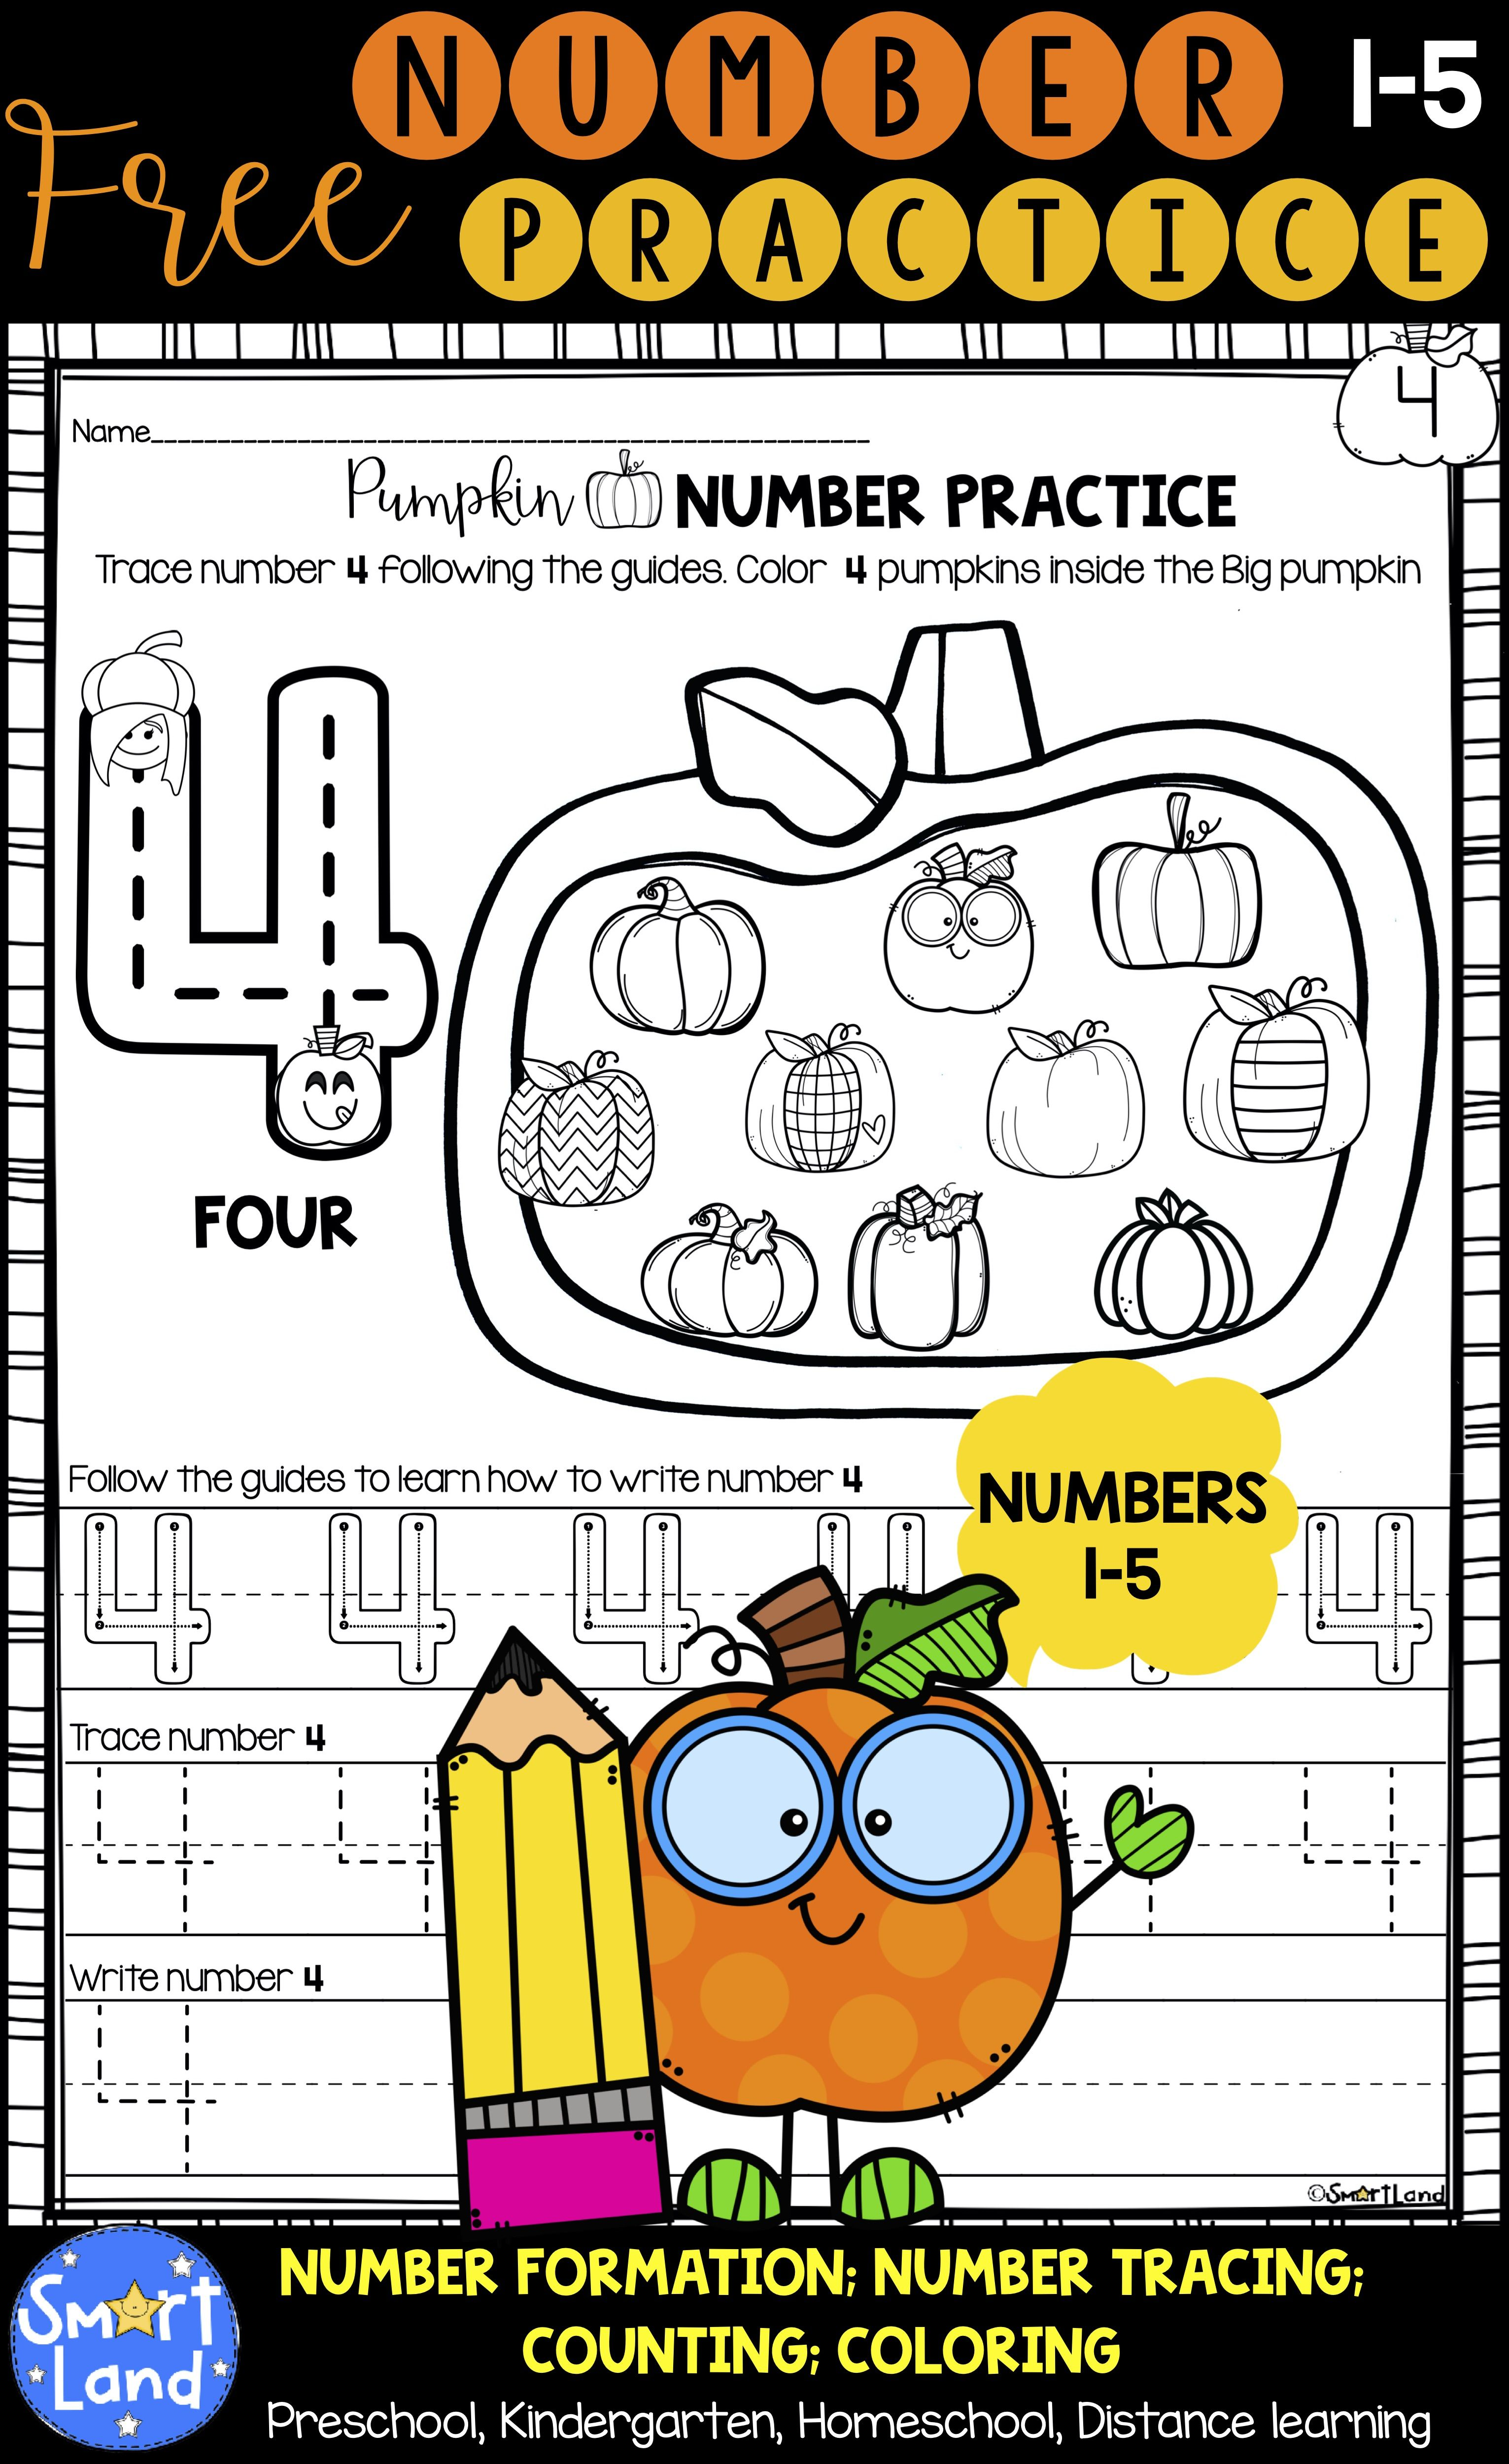 Free Number Practice 1 5 Handwriting And Counting